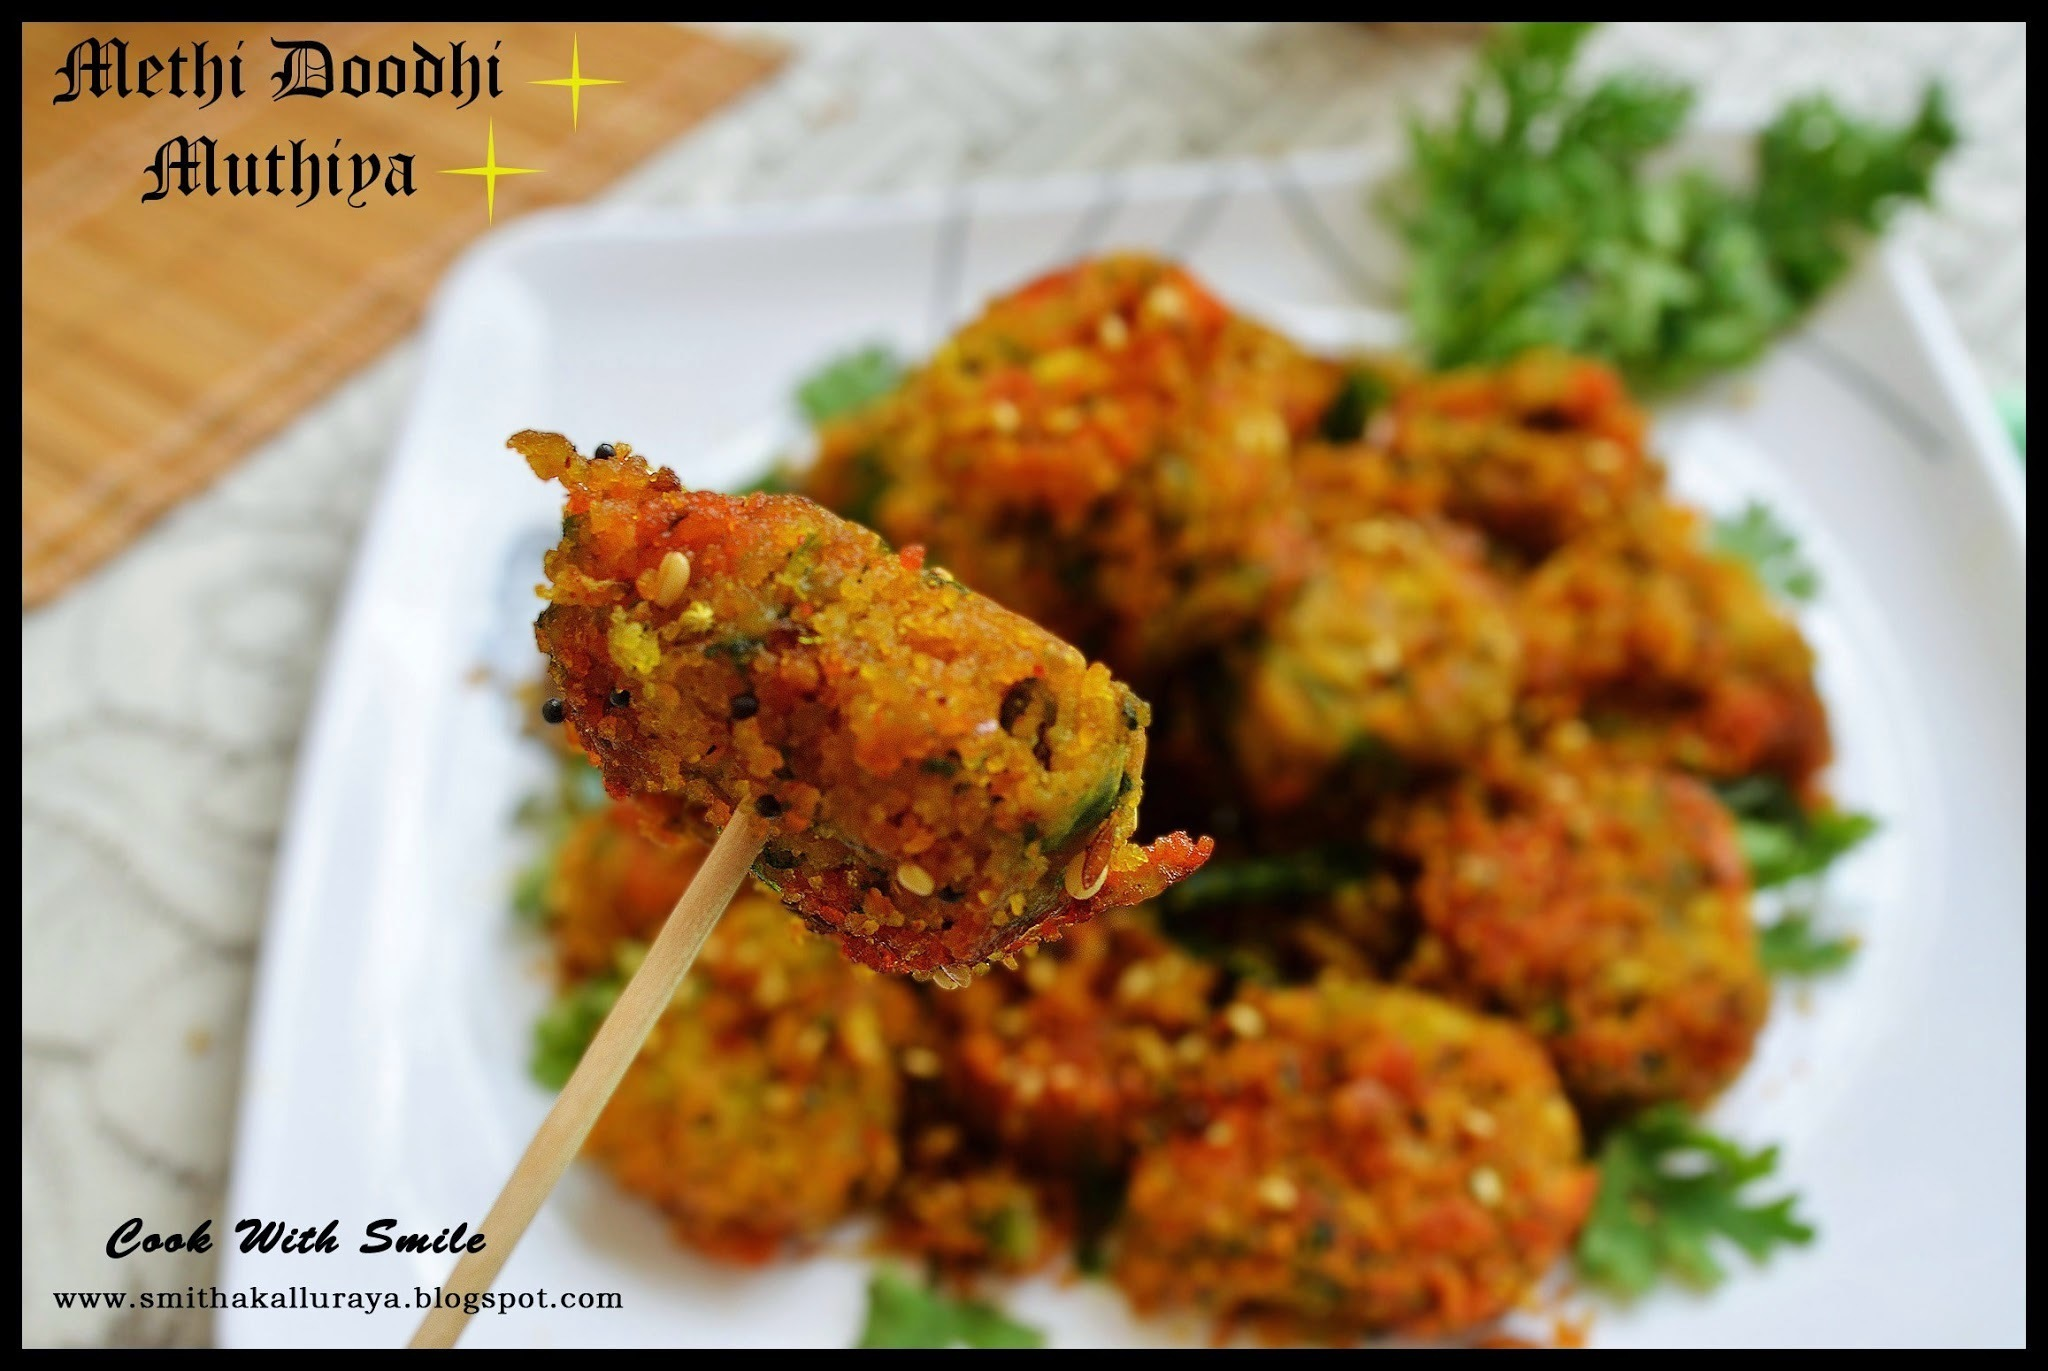 METHI DOODHI MUTHIYA / MUTHIA RECIPE - STEAMED HEALTHY SNACK RECIPES